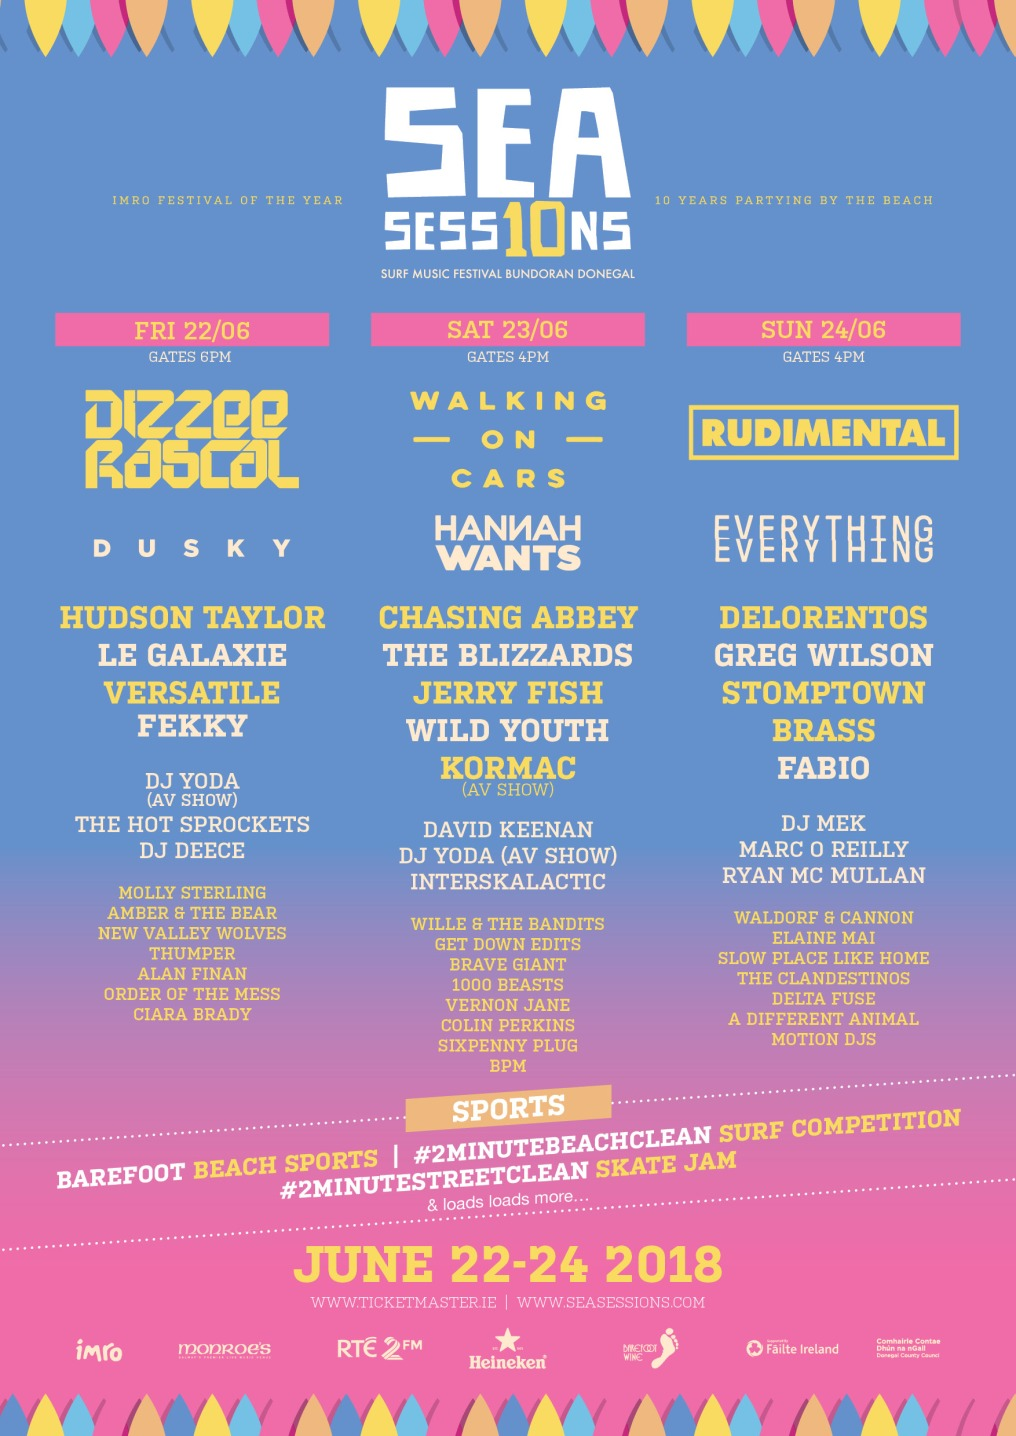 Sea Sessions 2018 day to day breakdown